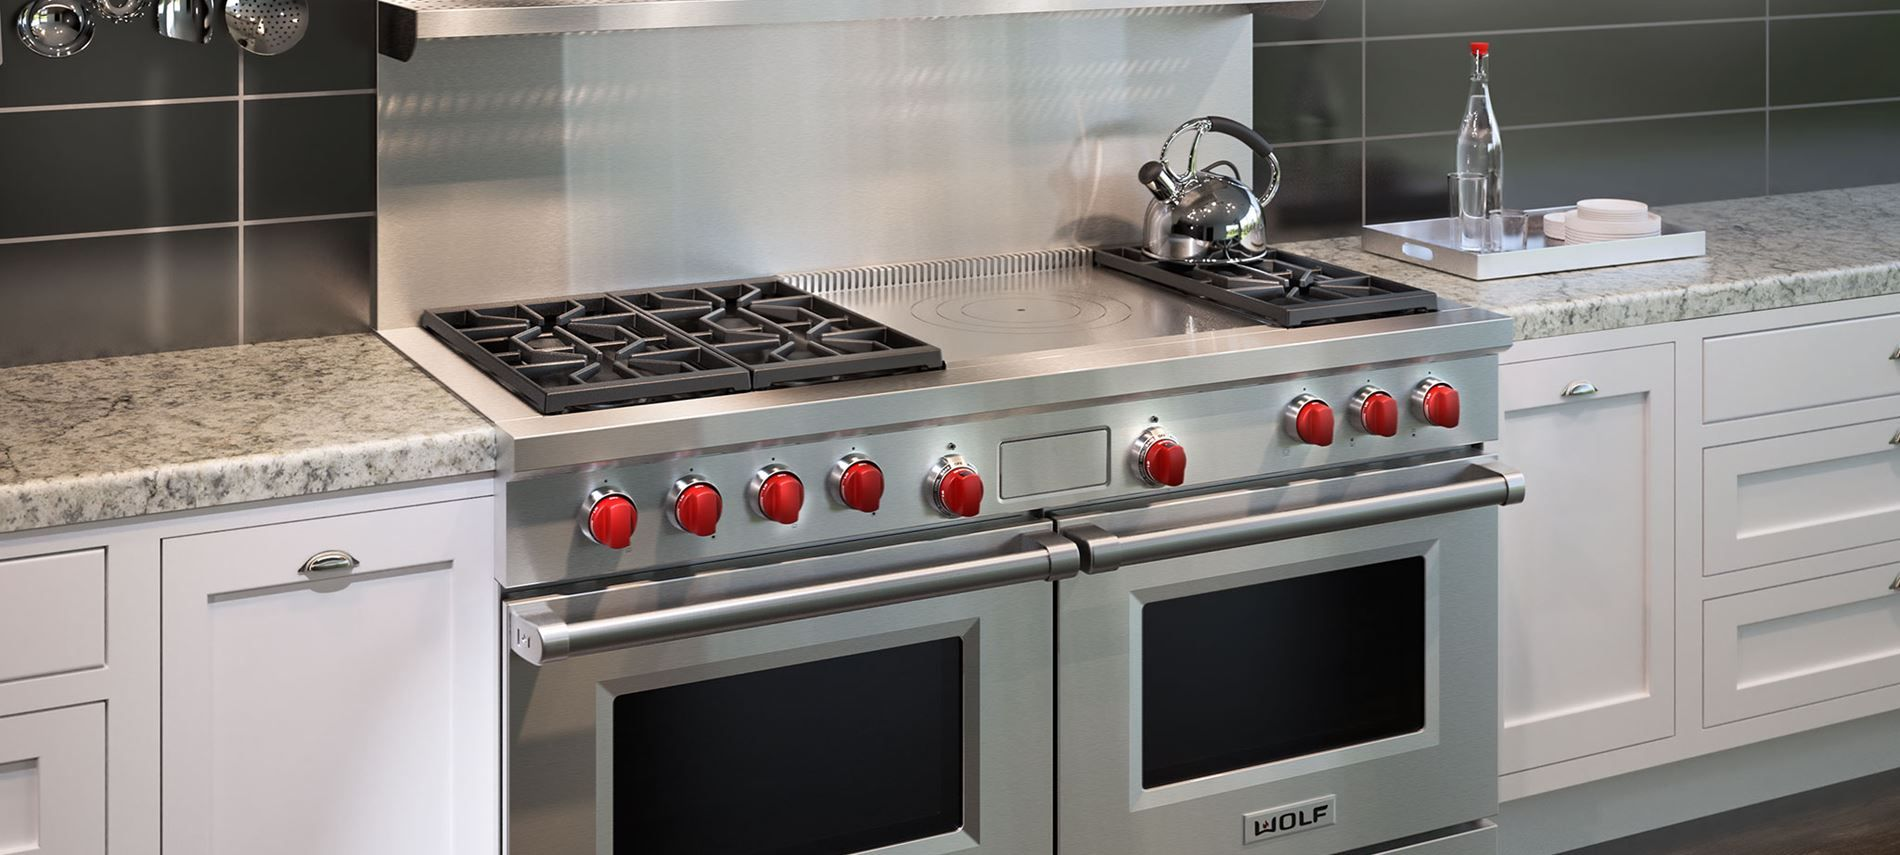 60 Dual Fuel Range 6 Burners And French Top Kitchen Inspirations Kitchen Redesign Dual Fuel Ranges